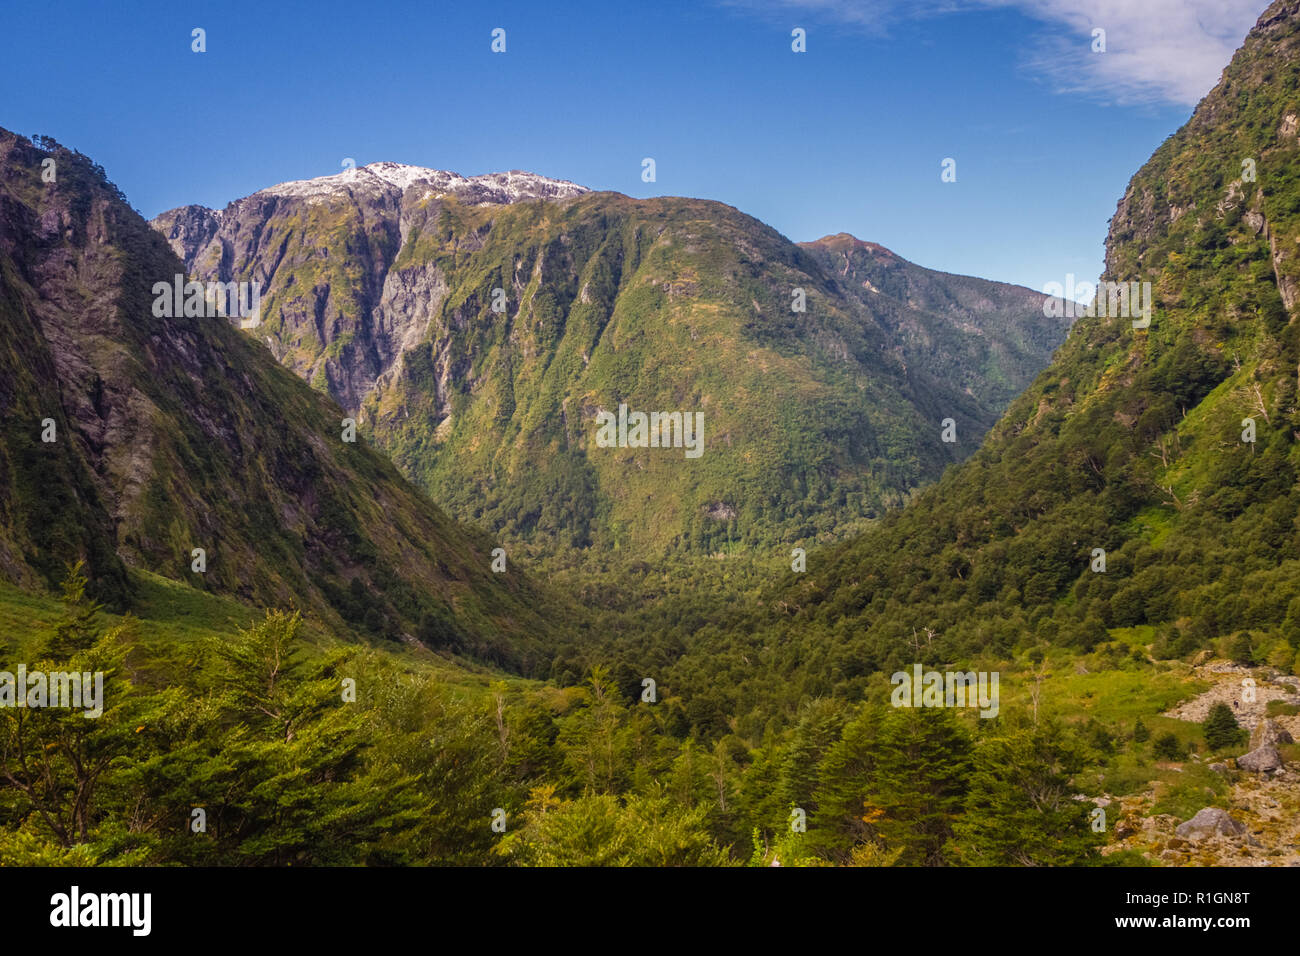 Enchanted Forest - Queulat National Park - Carretera Austral Chile, Patagonia - Stock Image